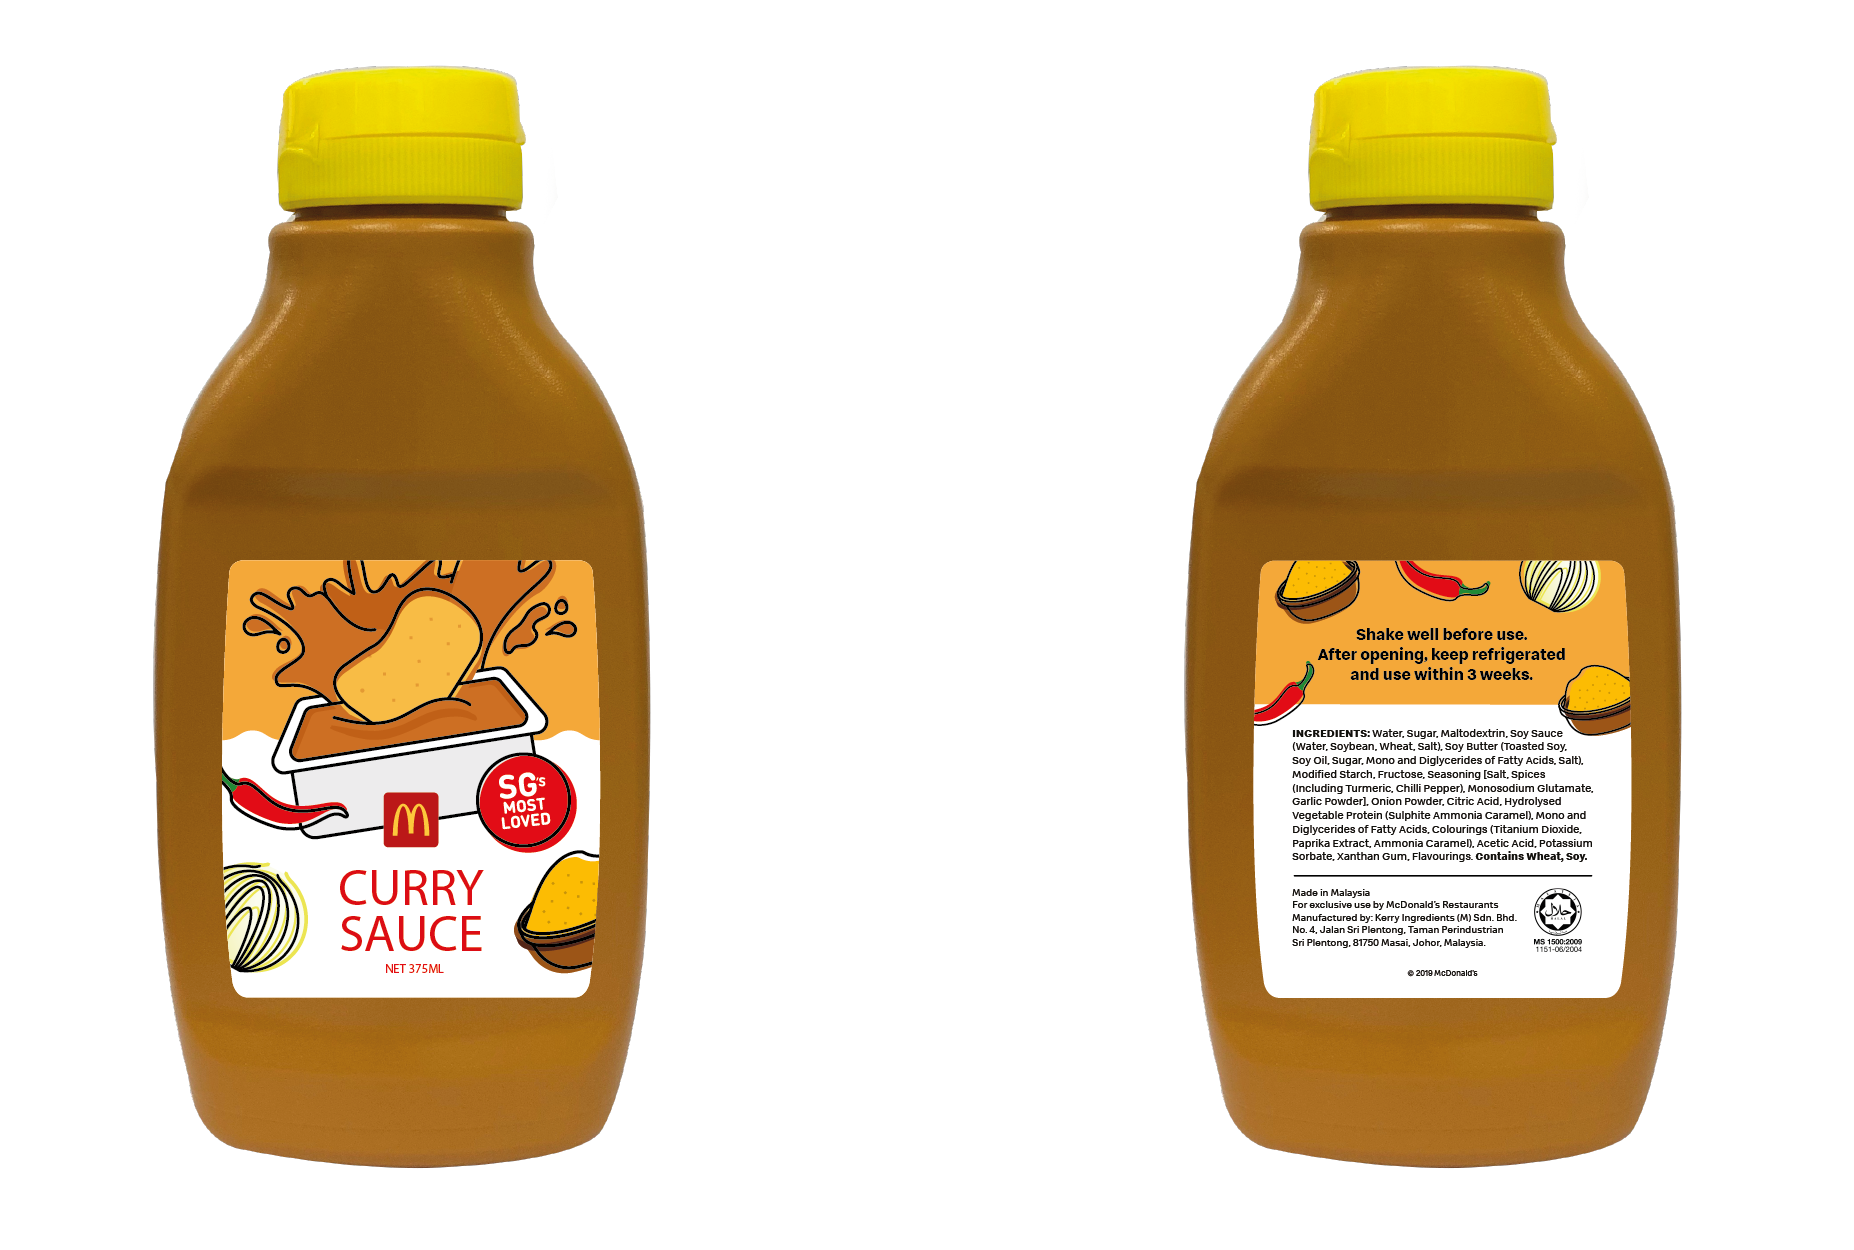 Satisfy your love for spice with McDonald's Curry Sauce Bottle and Spicy Chicken McNuggets - Alvinology